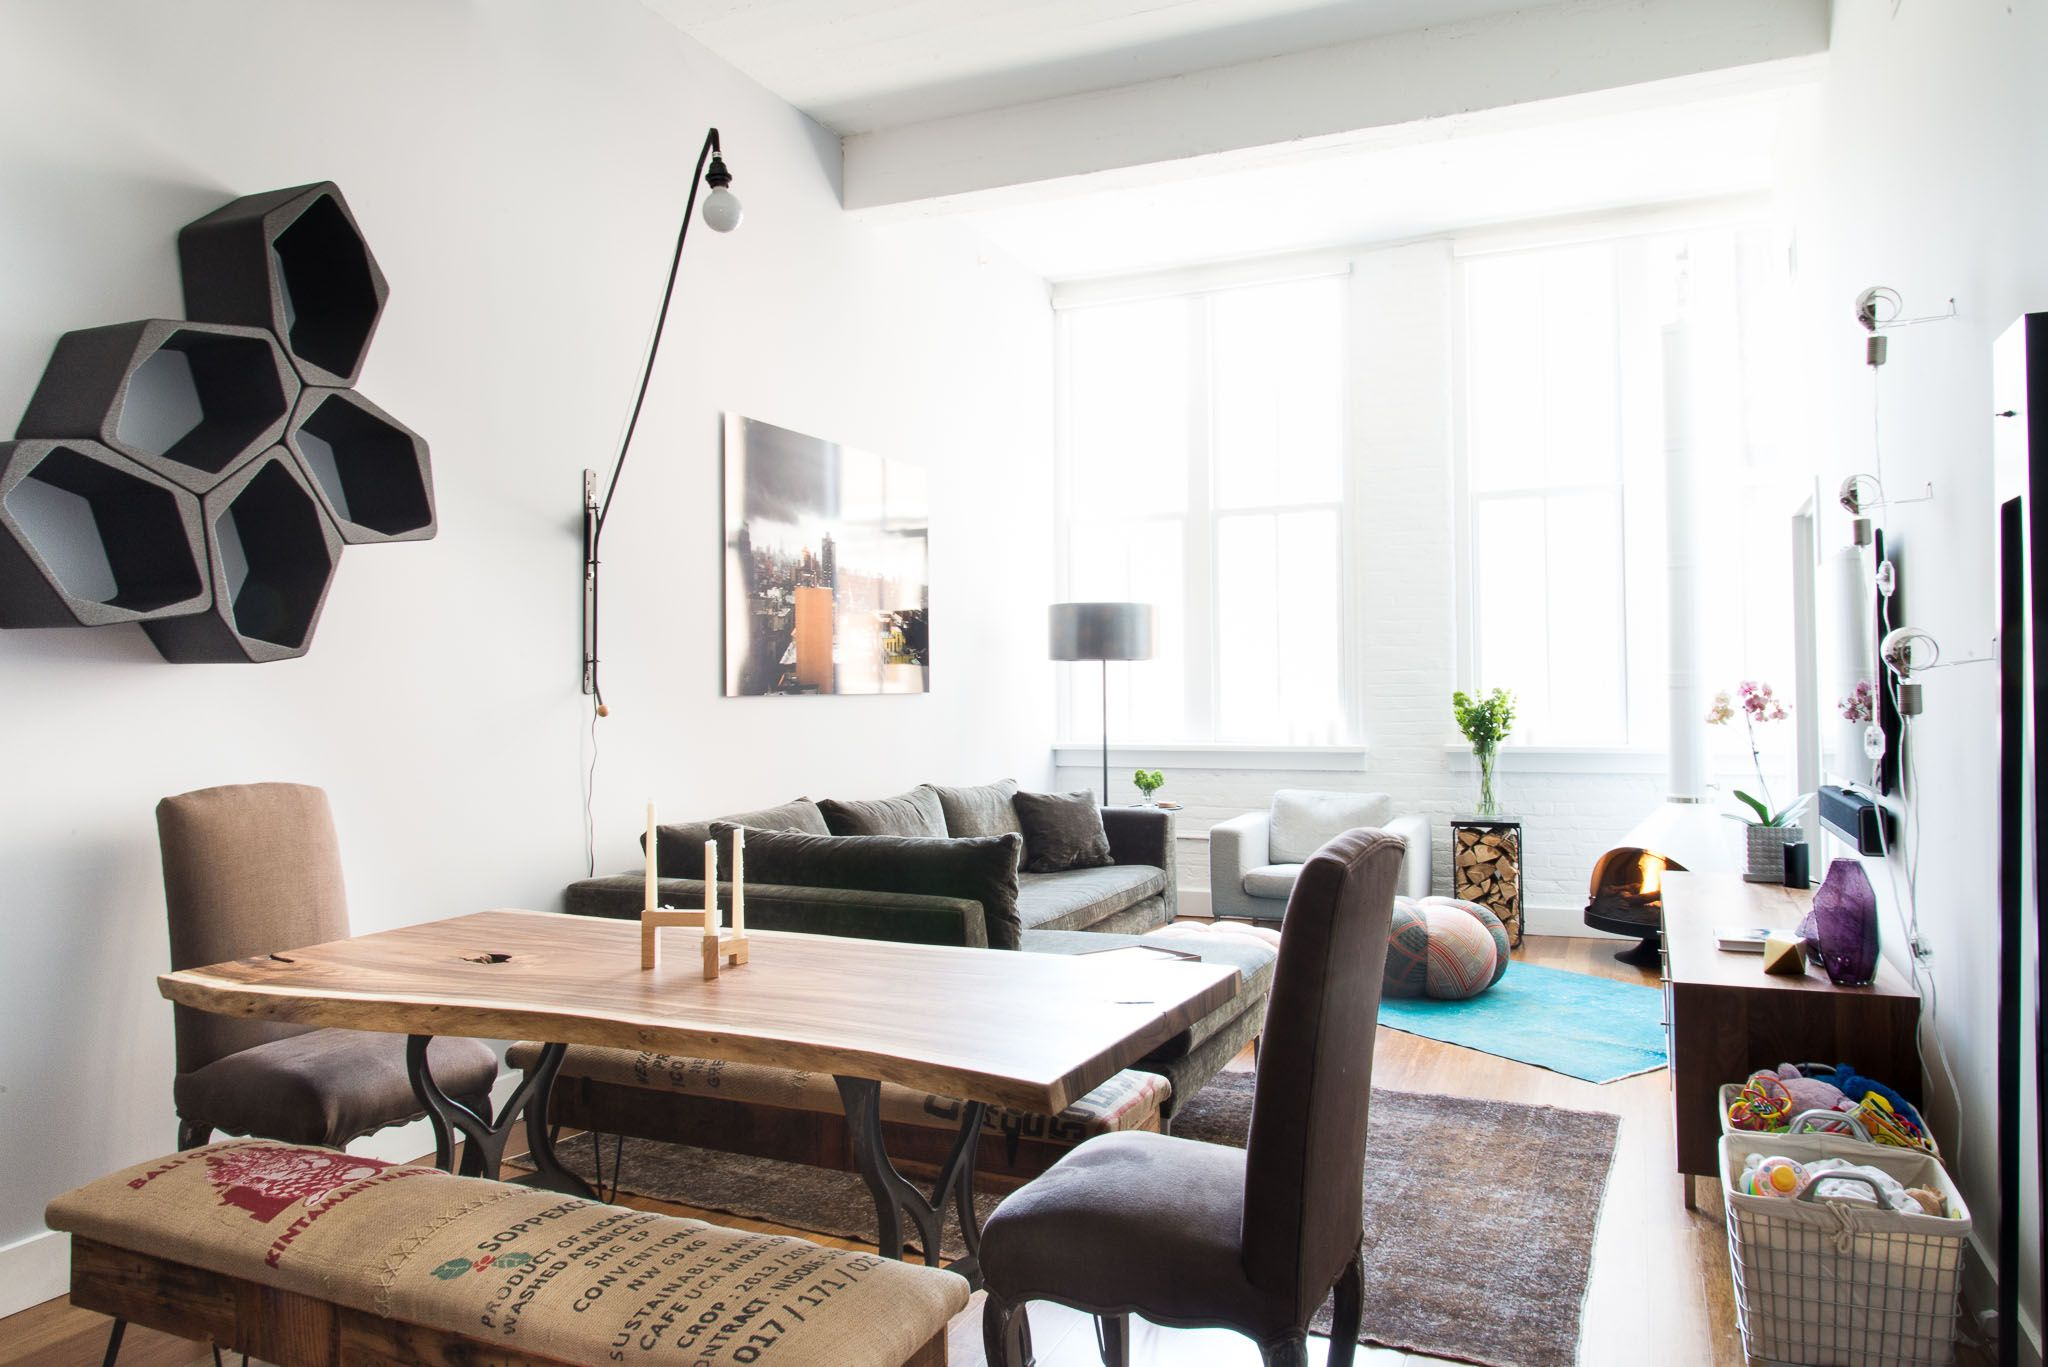 A Young Family\'s Brooklyn Home | Apartments, Shelves and House